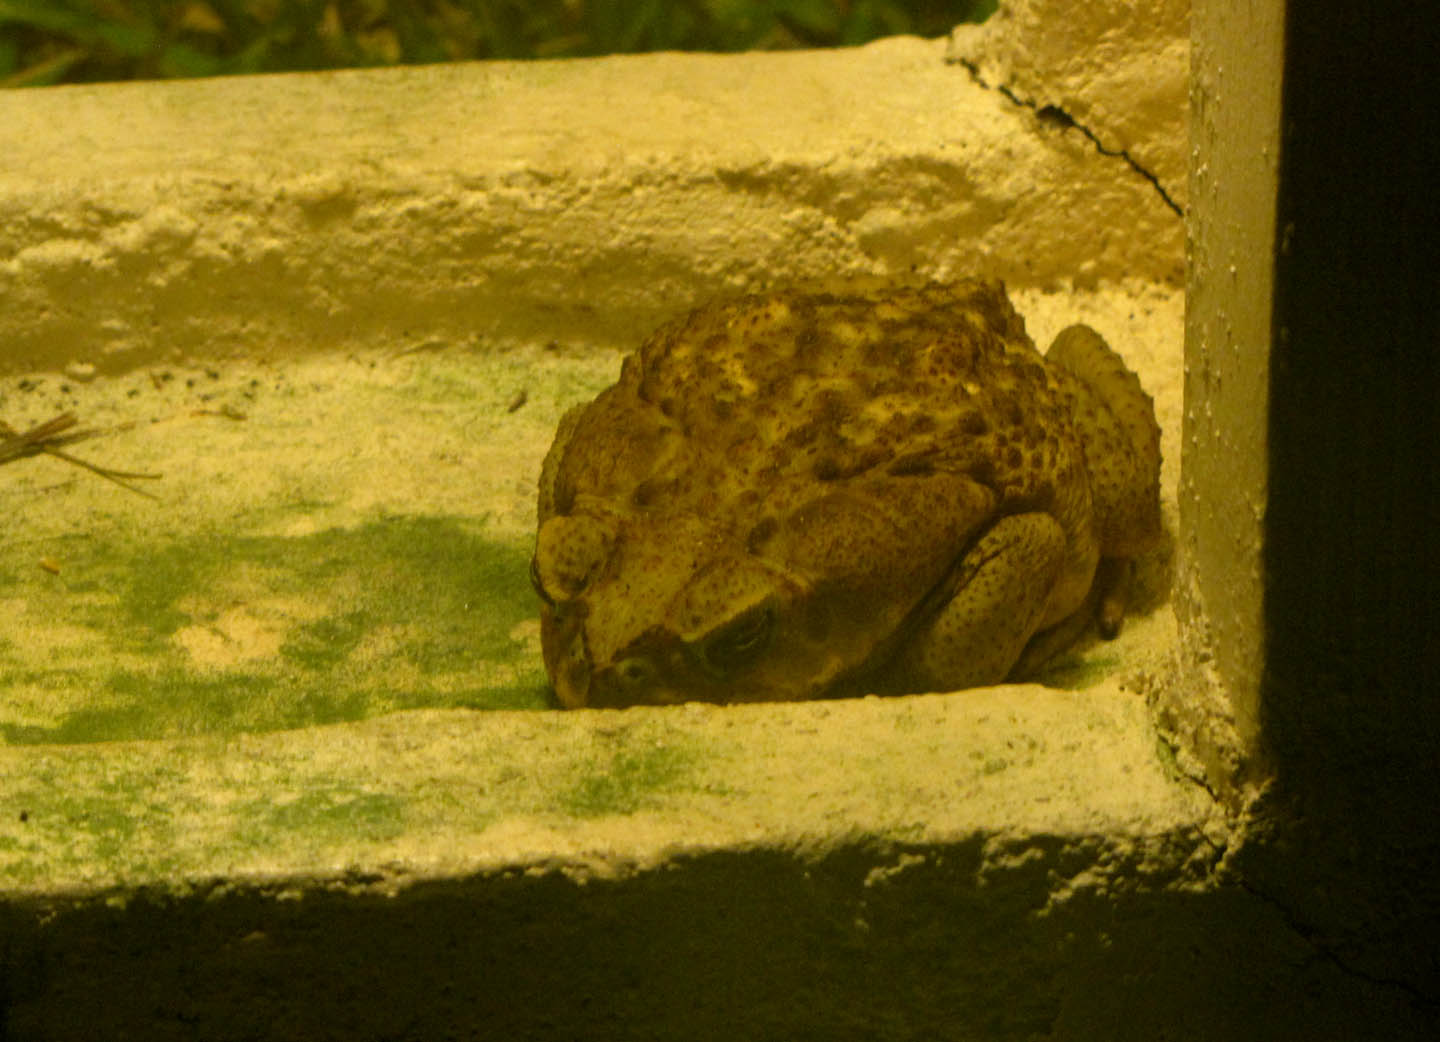 06-13-Toad-01